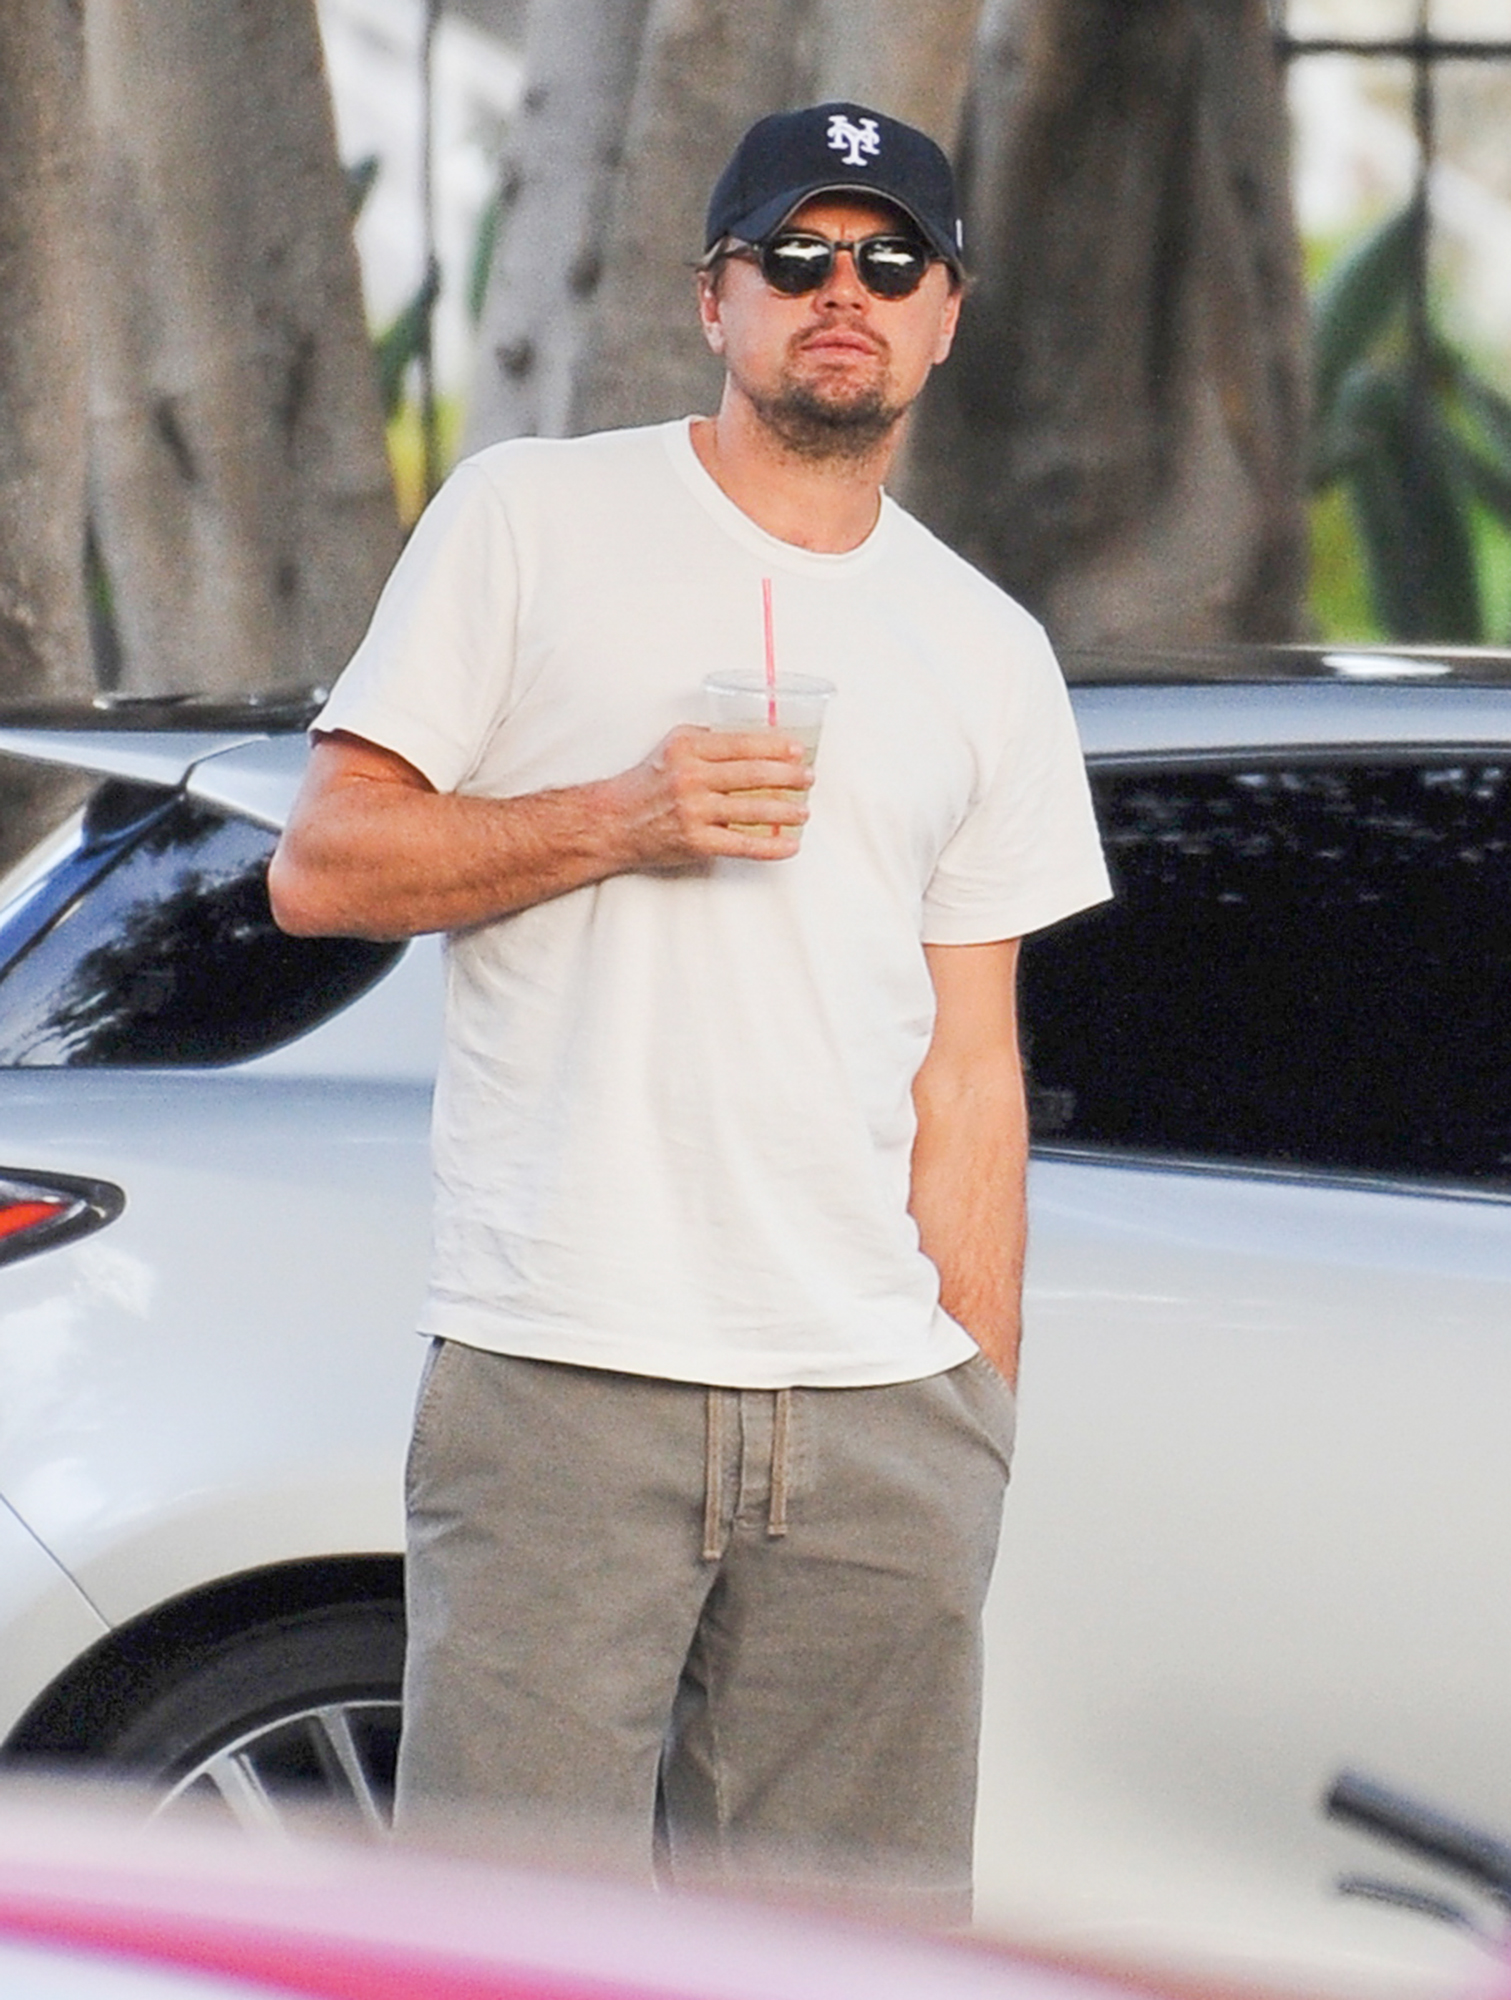 EXCLUSIVE: Leonardo DiCaprio is Spotted Tucking into a Burrito at a Cafe in Los Angeles